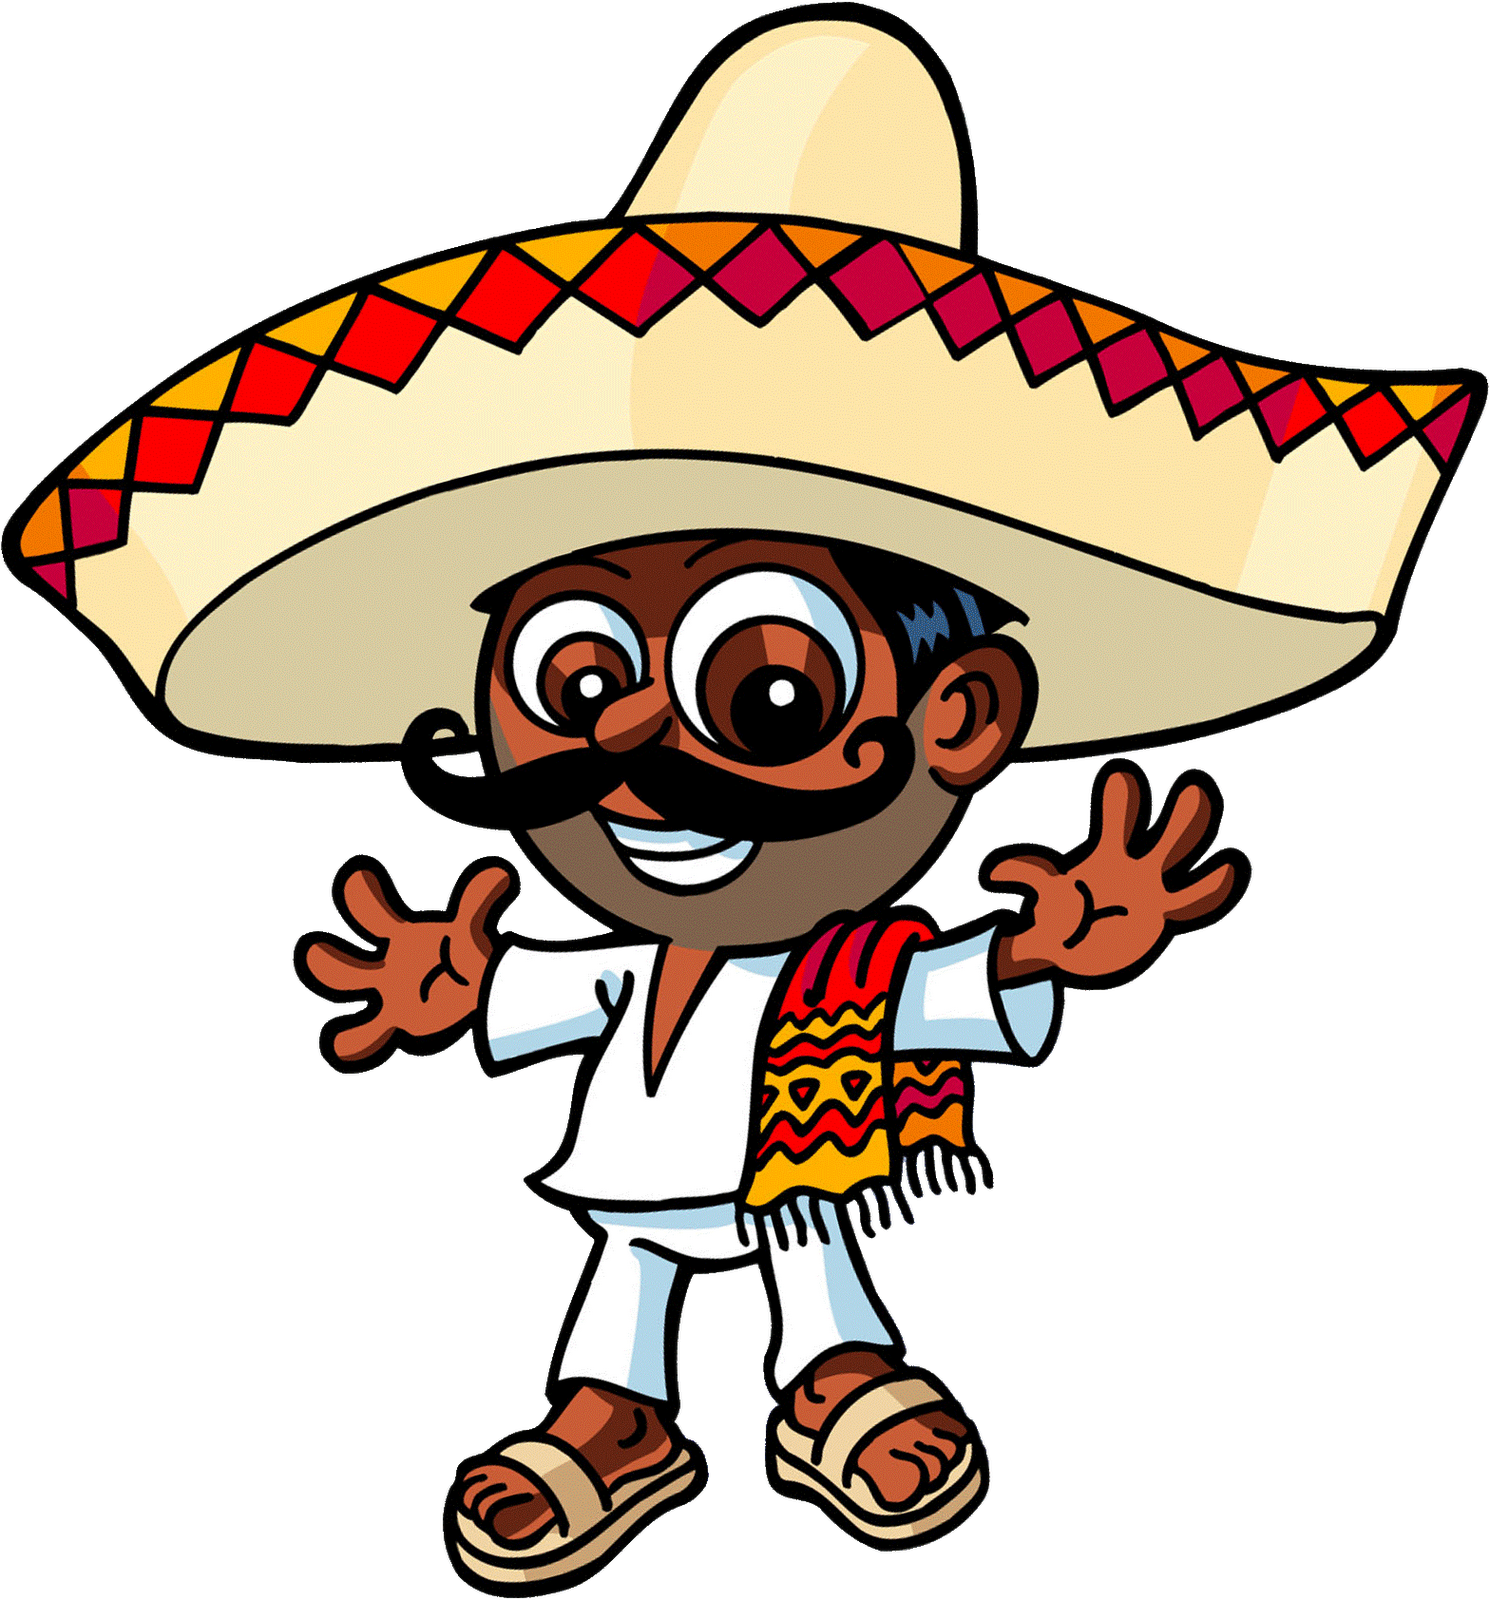 Mexican cross clipart graphic download 561) 301-2424 FAT BRAIN INTERACTIVE, Spring Meadow Drive, West Palm ... graphic download